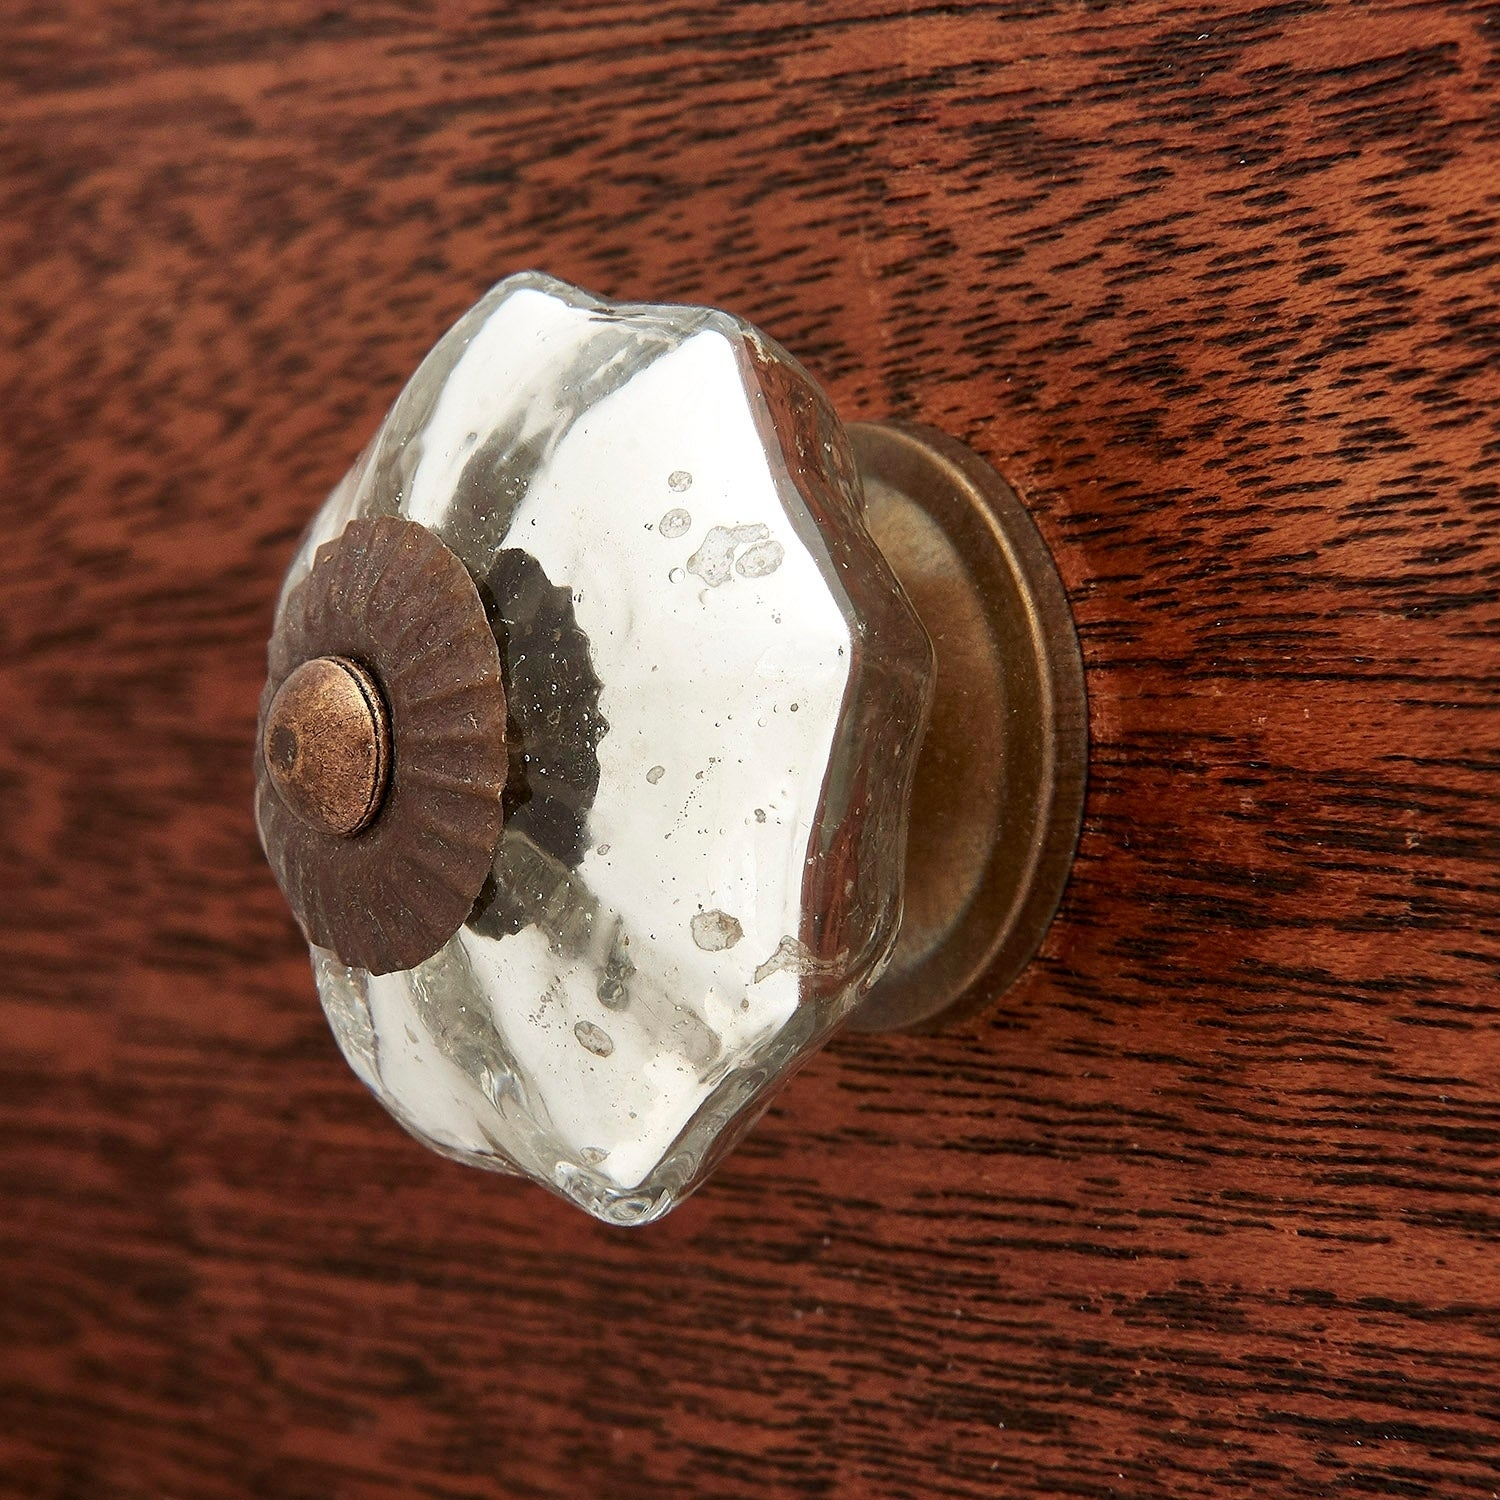 Antique Silver Mercury Glass Knobs Cabinet Pulls Pack Of 6 On Sale Overstock 12343190